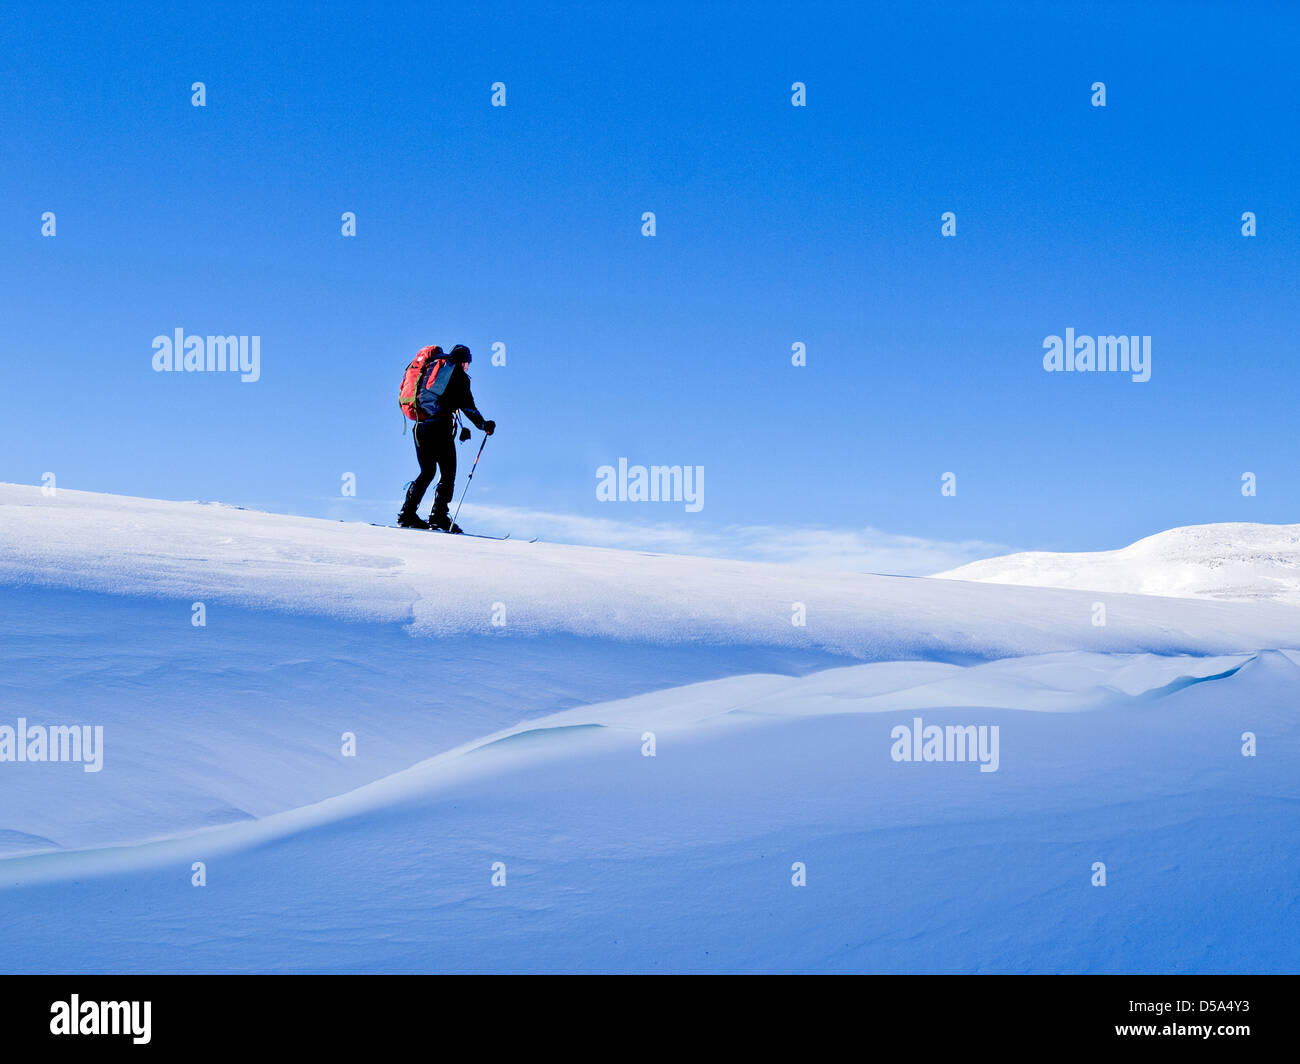 Ski touring in Northern Norway a skier skiing along the top of a snow cornice - Stock Image